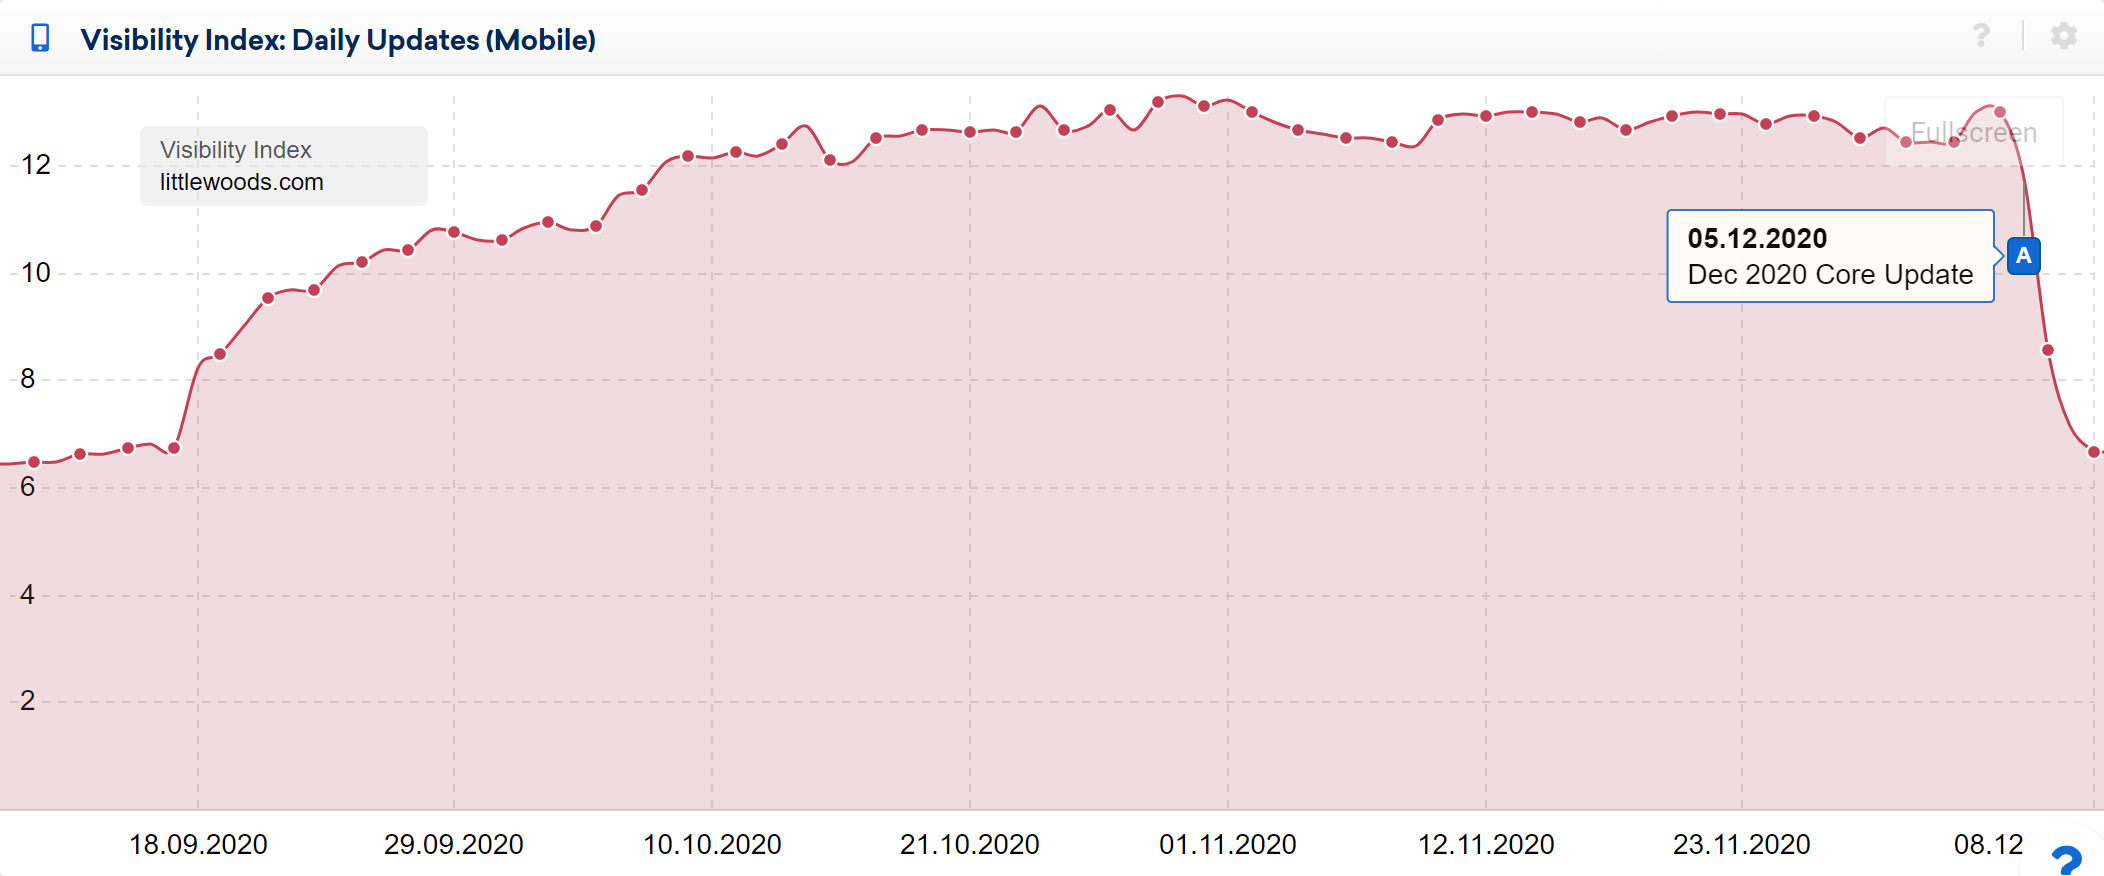 Littlewoods domain losing a large percentage of visibility during the Dec 2020 Core Update. (07.12)